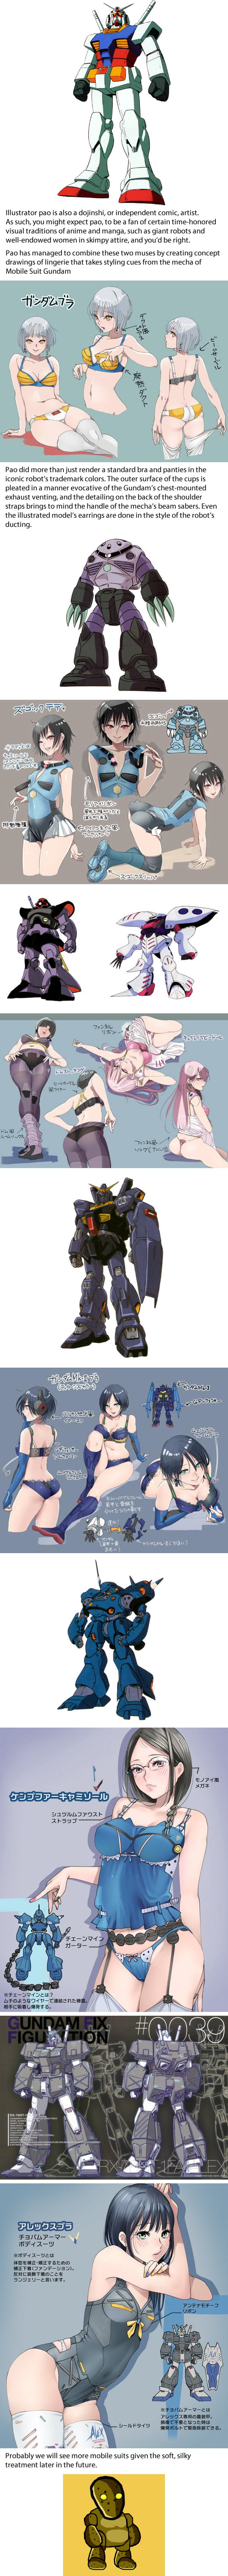 Illustrator reimagines the anime robots of Mobile Suit Gundam as a line of sexy lingerie